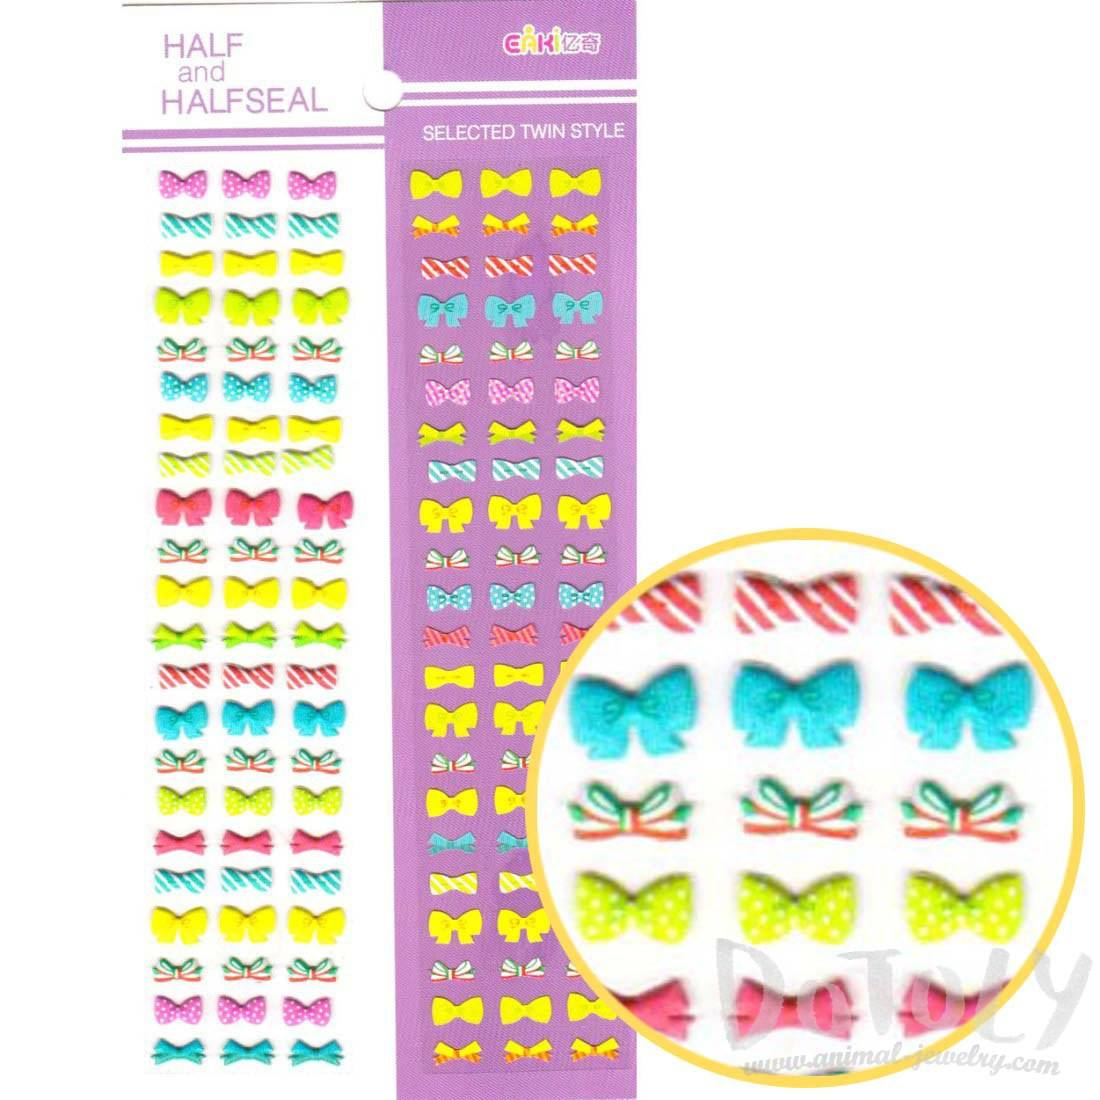 Colorful Ribbons and Bow Ties Shaped Puffy Flat Sticker